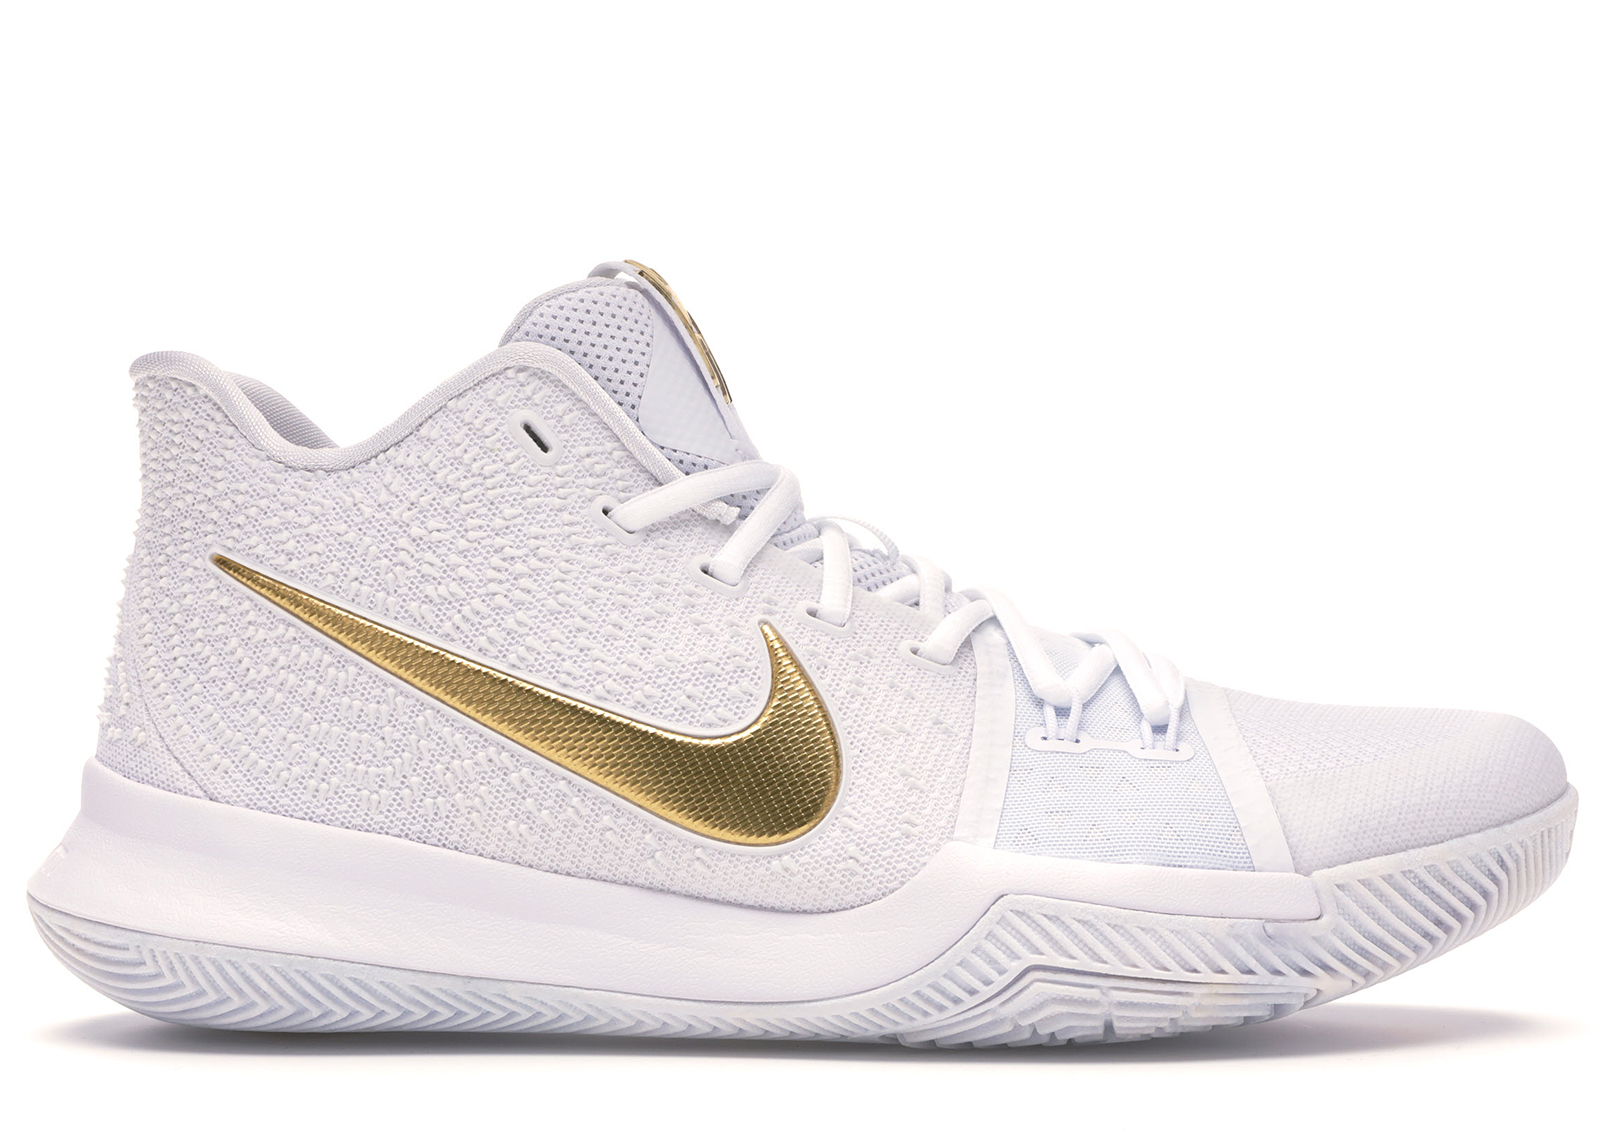 Nike Kyrie 3 Finals Gold - 852395-902